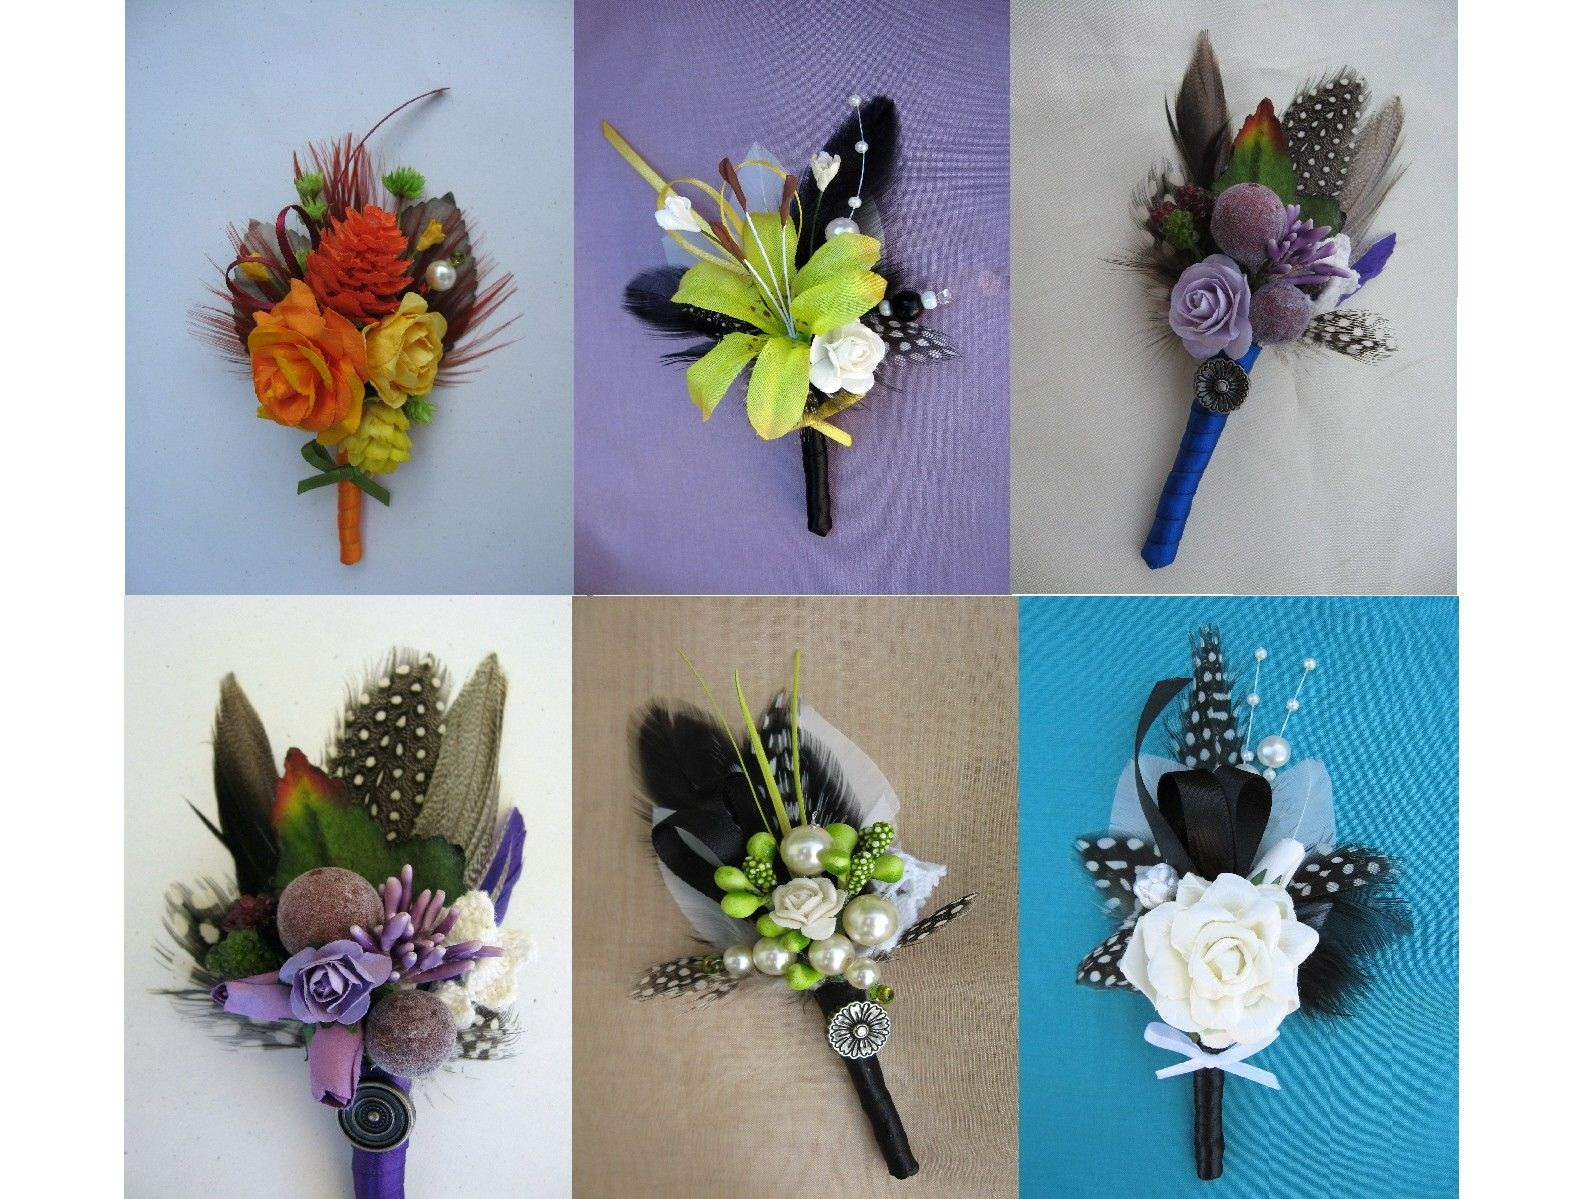 Diy wedding flowers diy boutonniere wedding bells and wedding diy wedding flowers mightylinksfo Choice Image